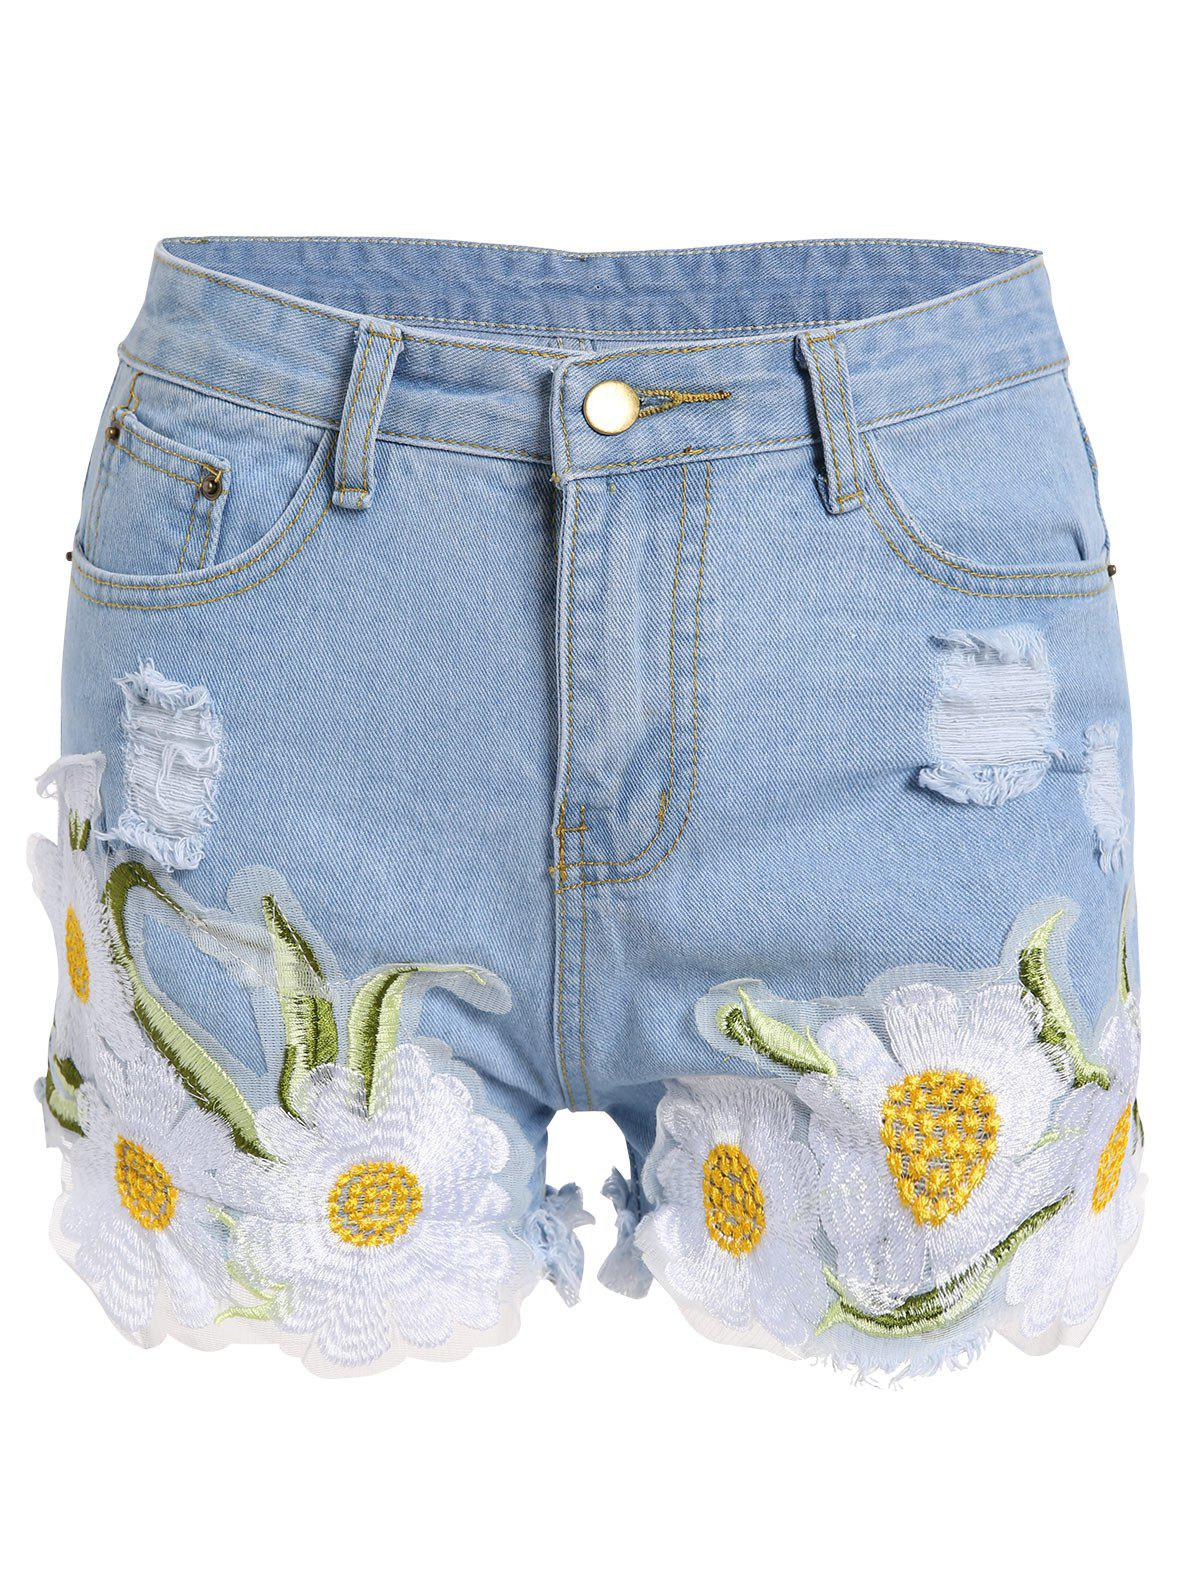 Frayed Embroidered Floral Denim Shorts - LIGHT BLUE XL